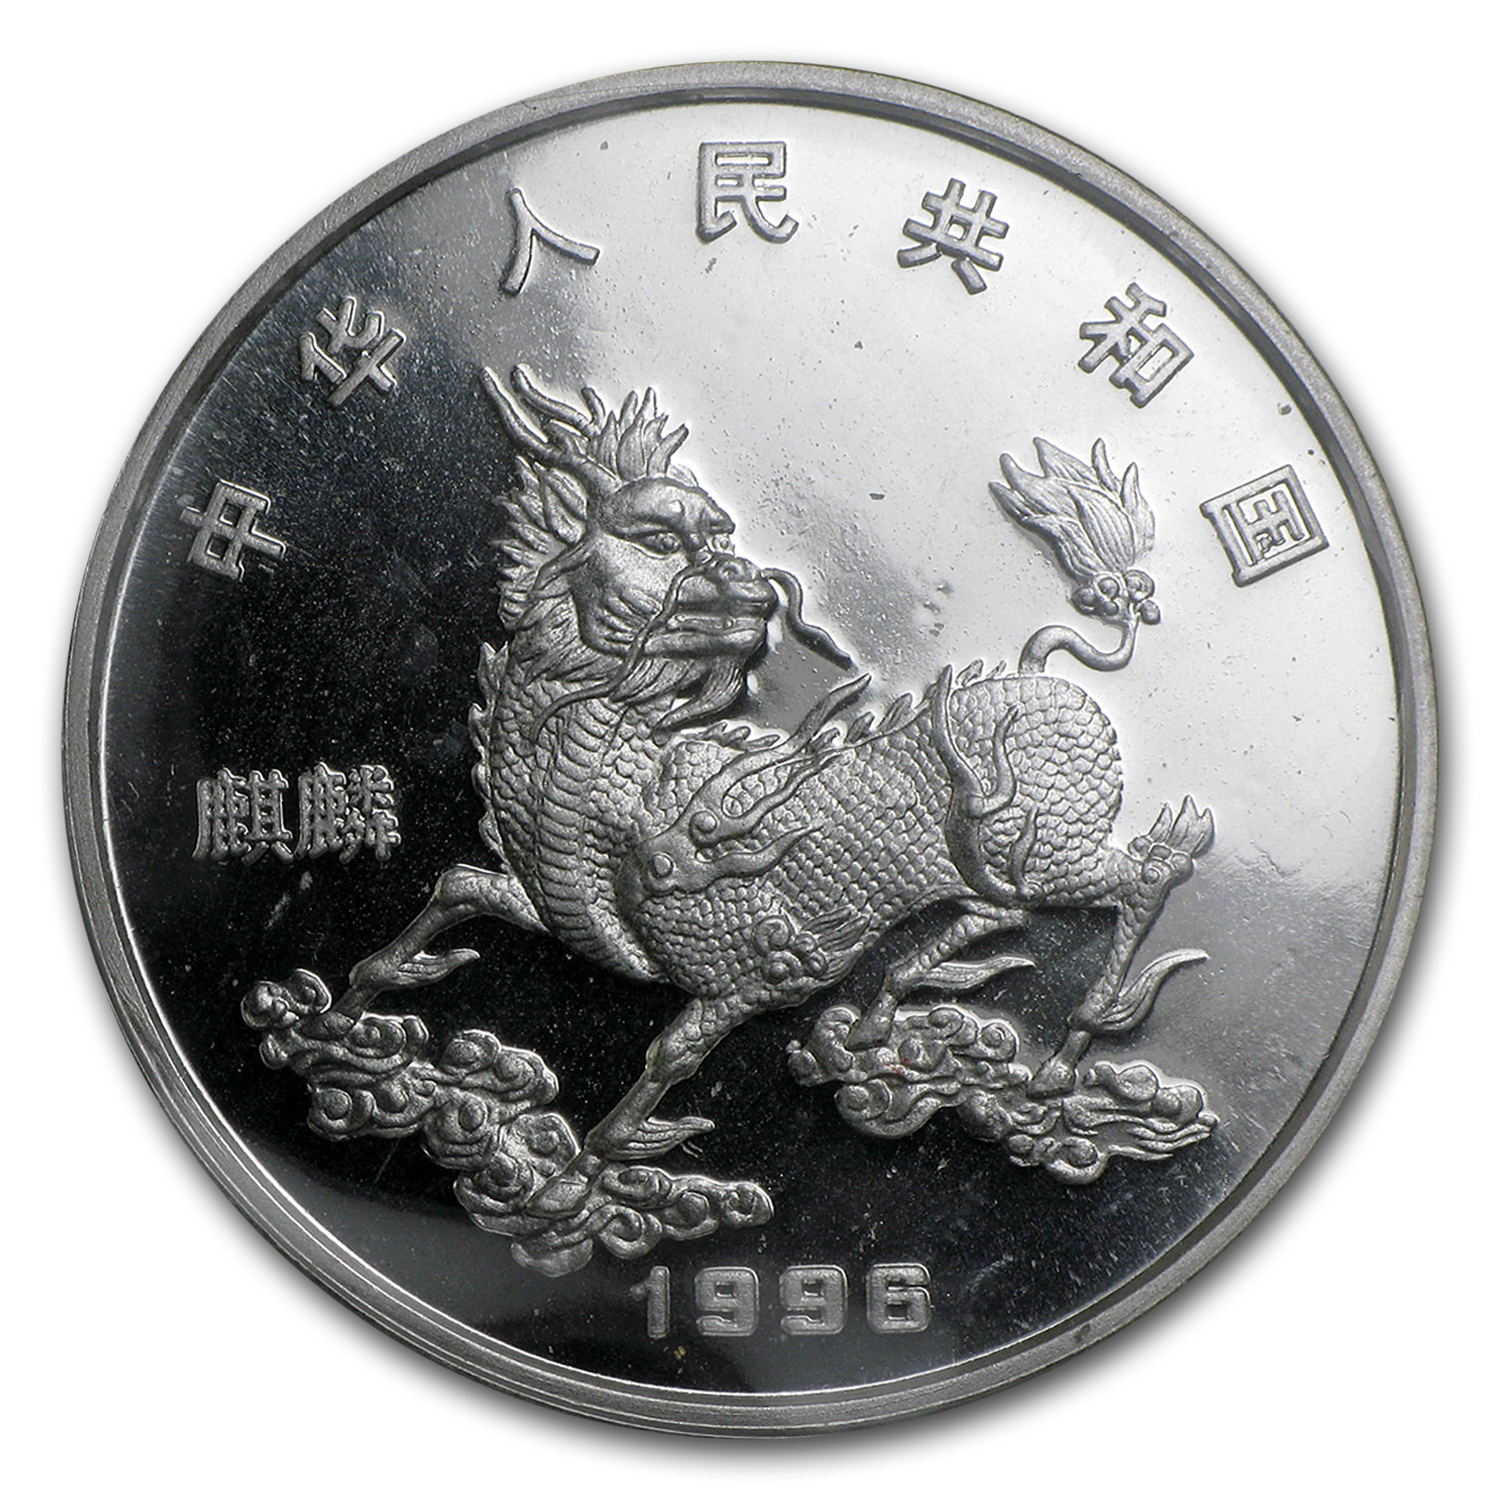 1996 China 20 gram Silver 5 Yuan Unicorn BU (Sealed)